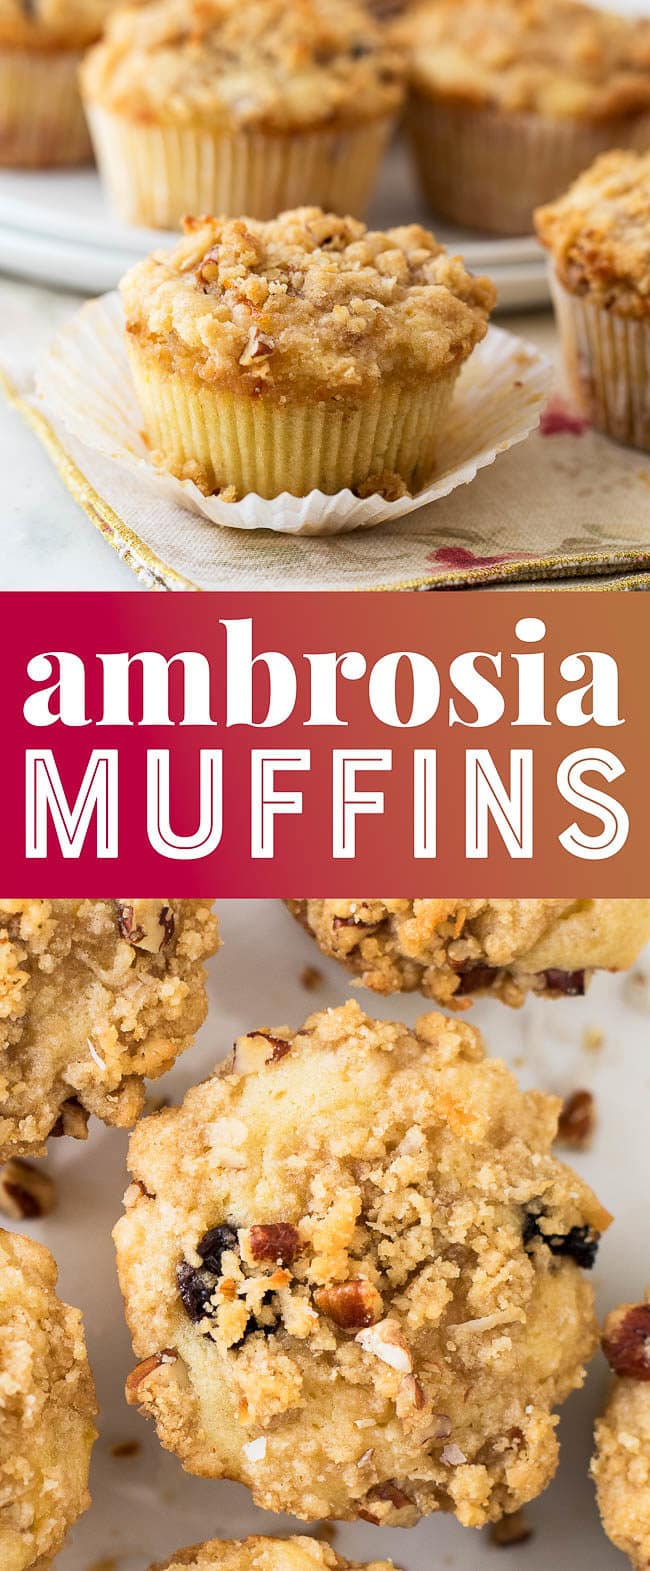 Ambrosia Muffins are filled with sweet coconut, cherries, and pecans!